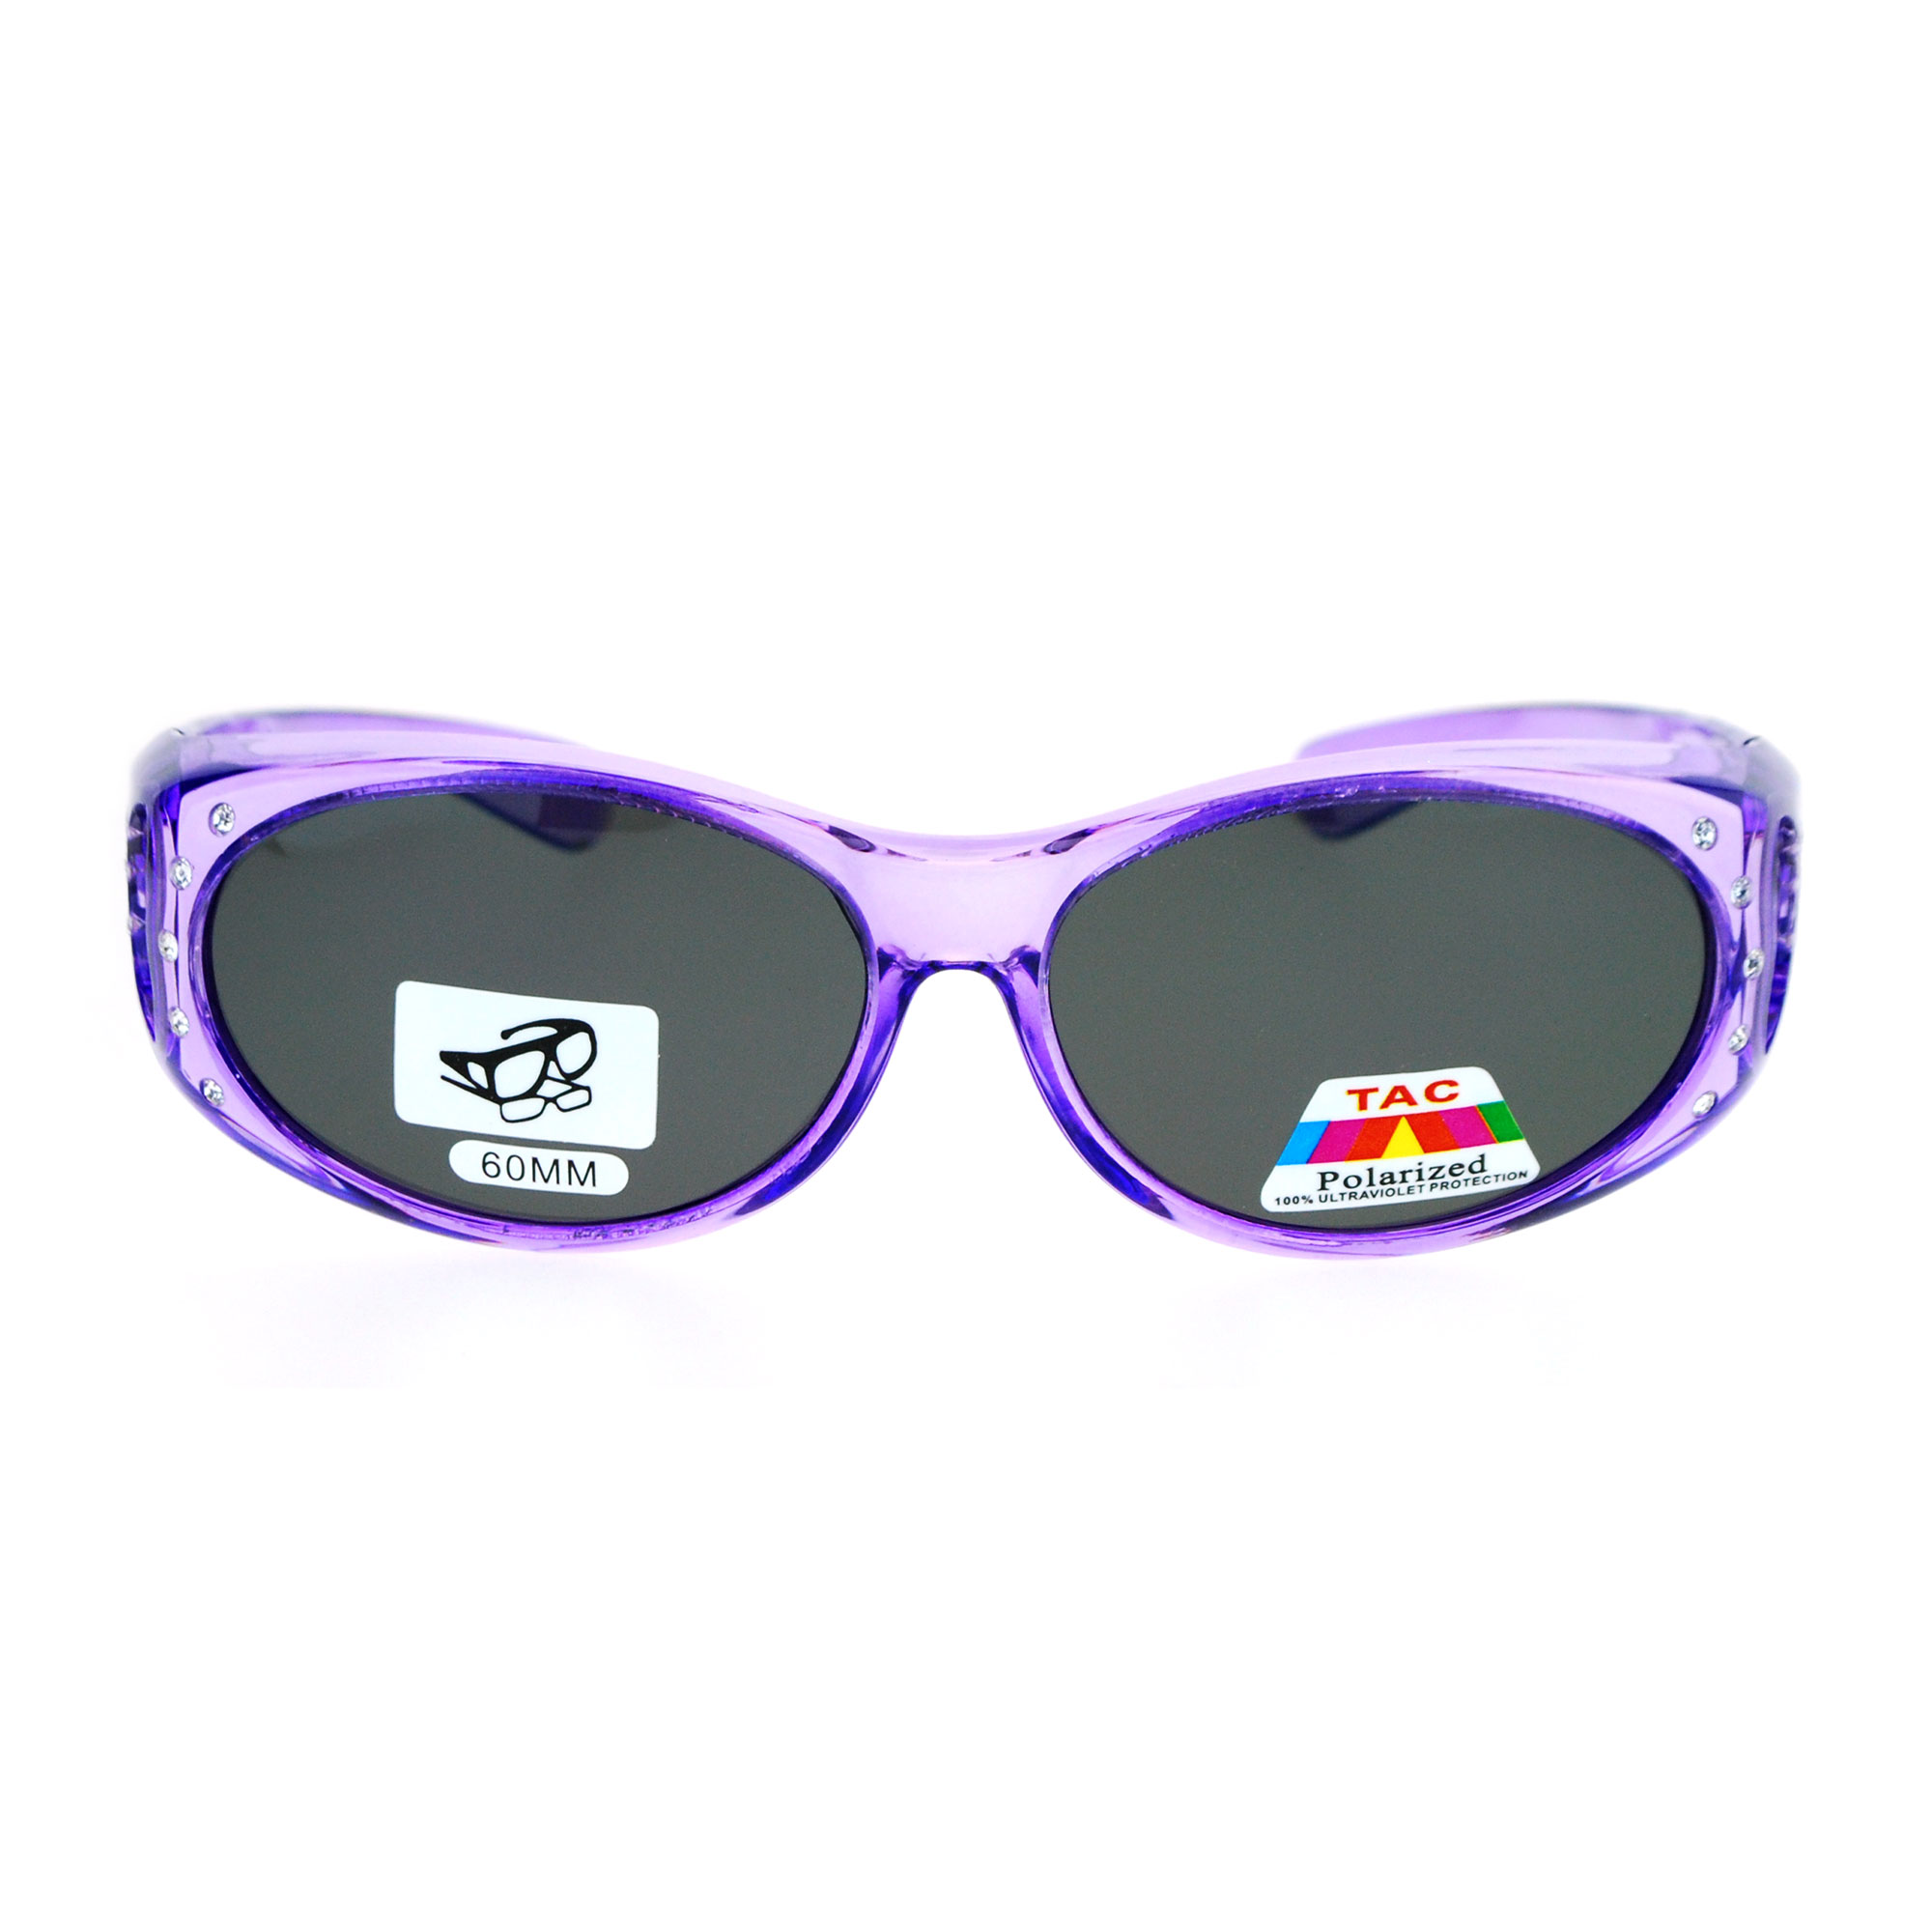 0d33feb8ab8 Fit Over Sunglasses With Bling « Heritage Malta